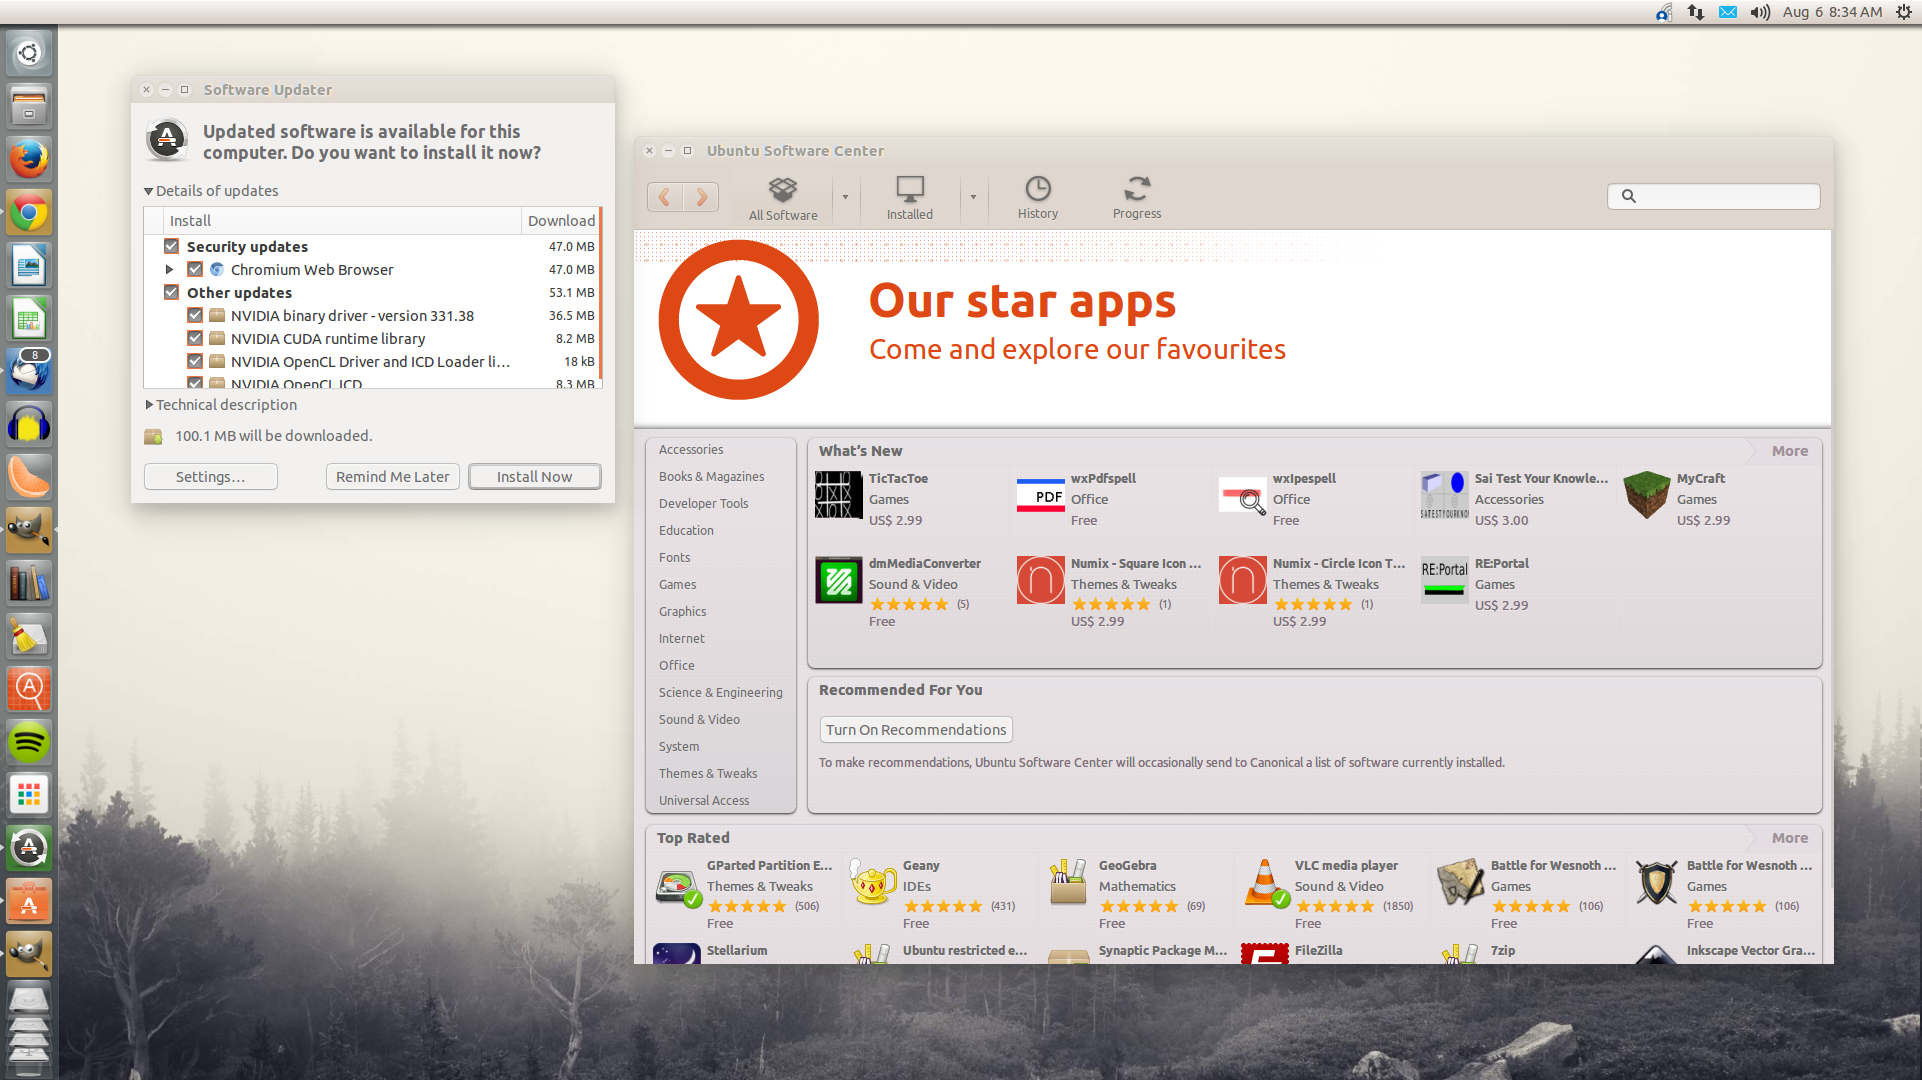 Ubuntu software center screenshot